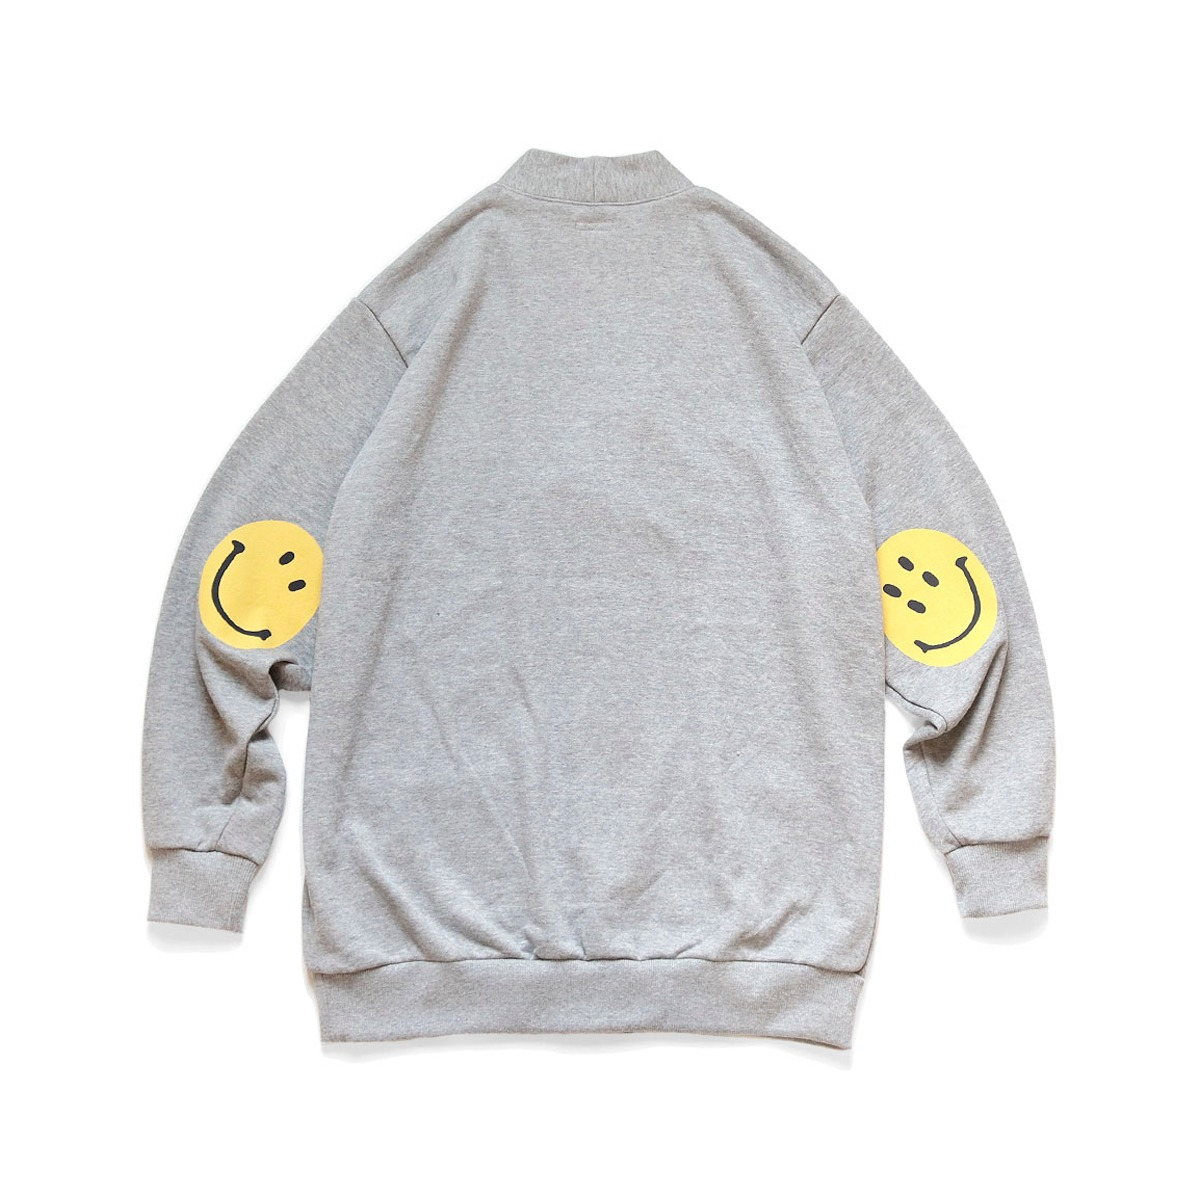 [KAPITAL] ECO FLEECY KNIT CARDIGAN (ELBOW SMILE) 'GREY'